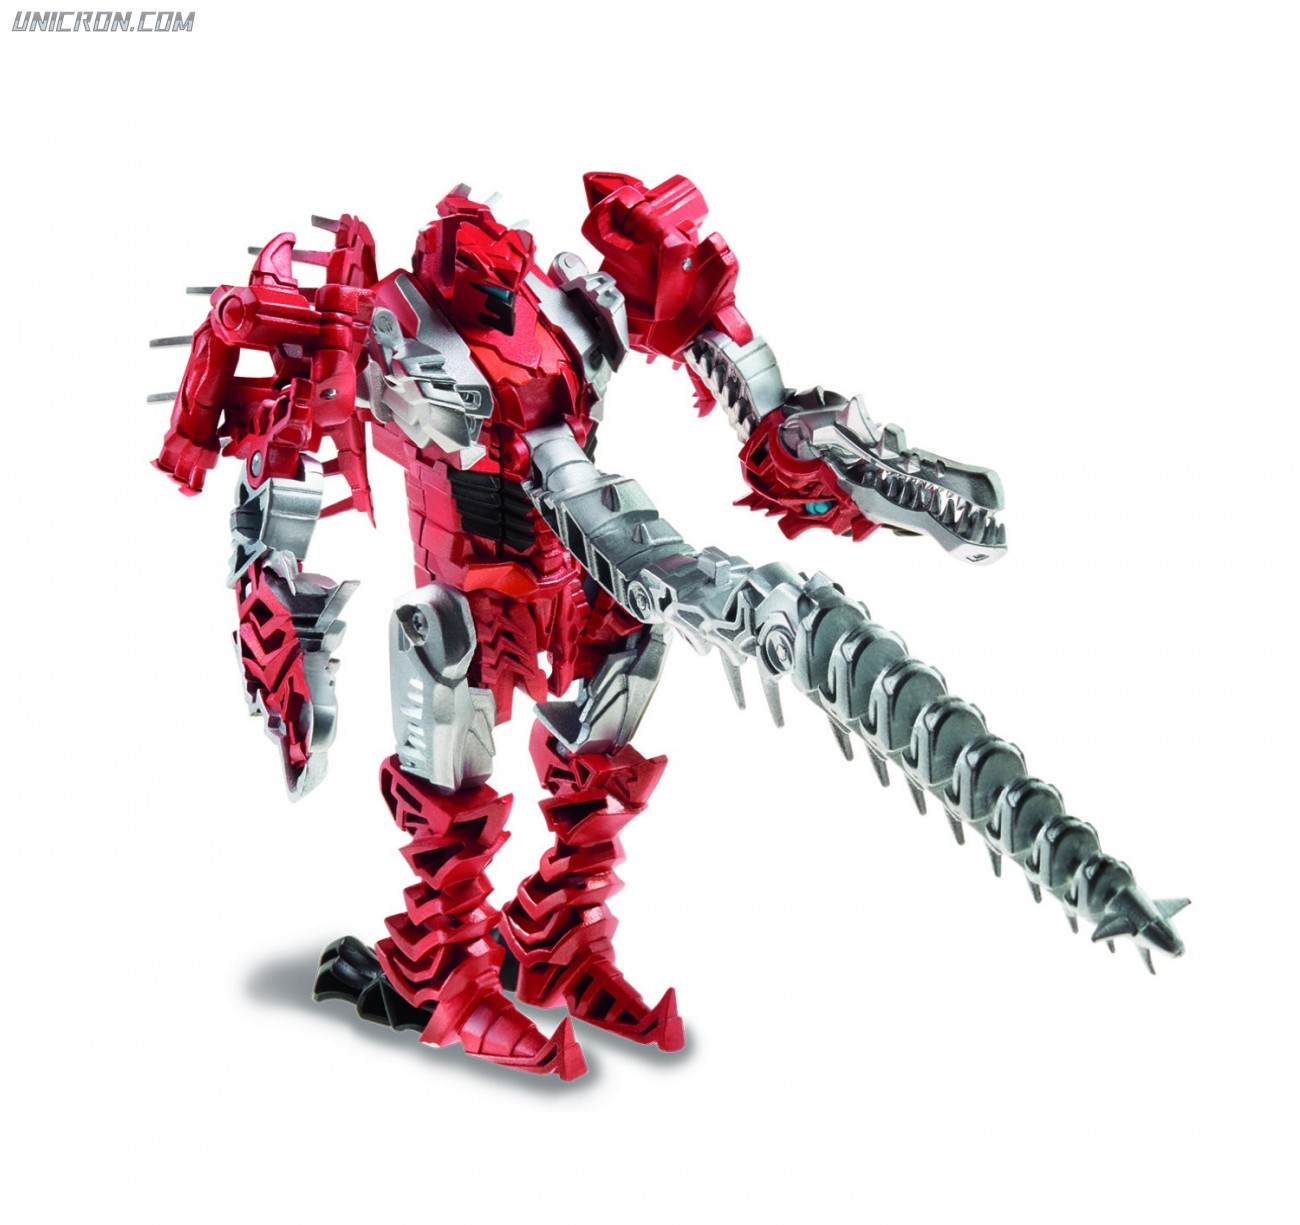 Transformers 4 Age of Extinction Scorn - AoE Power Battlers toy